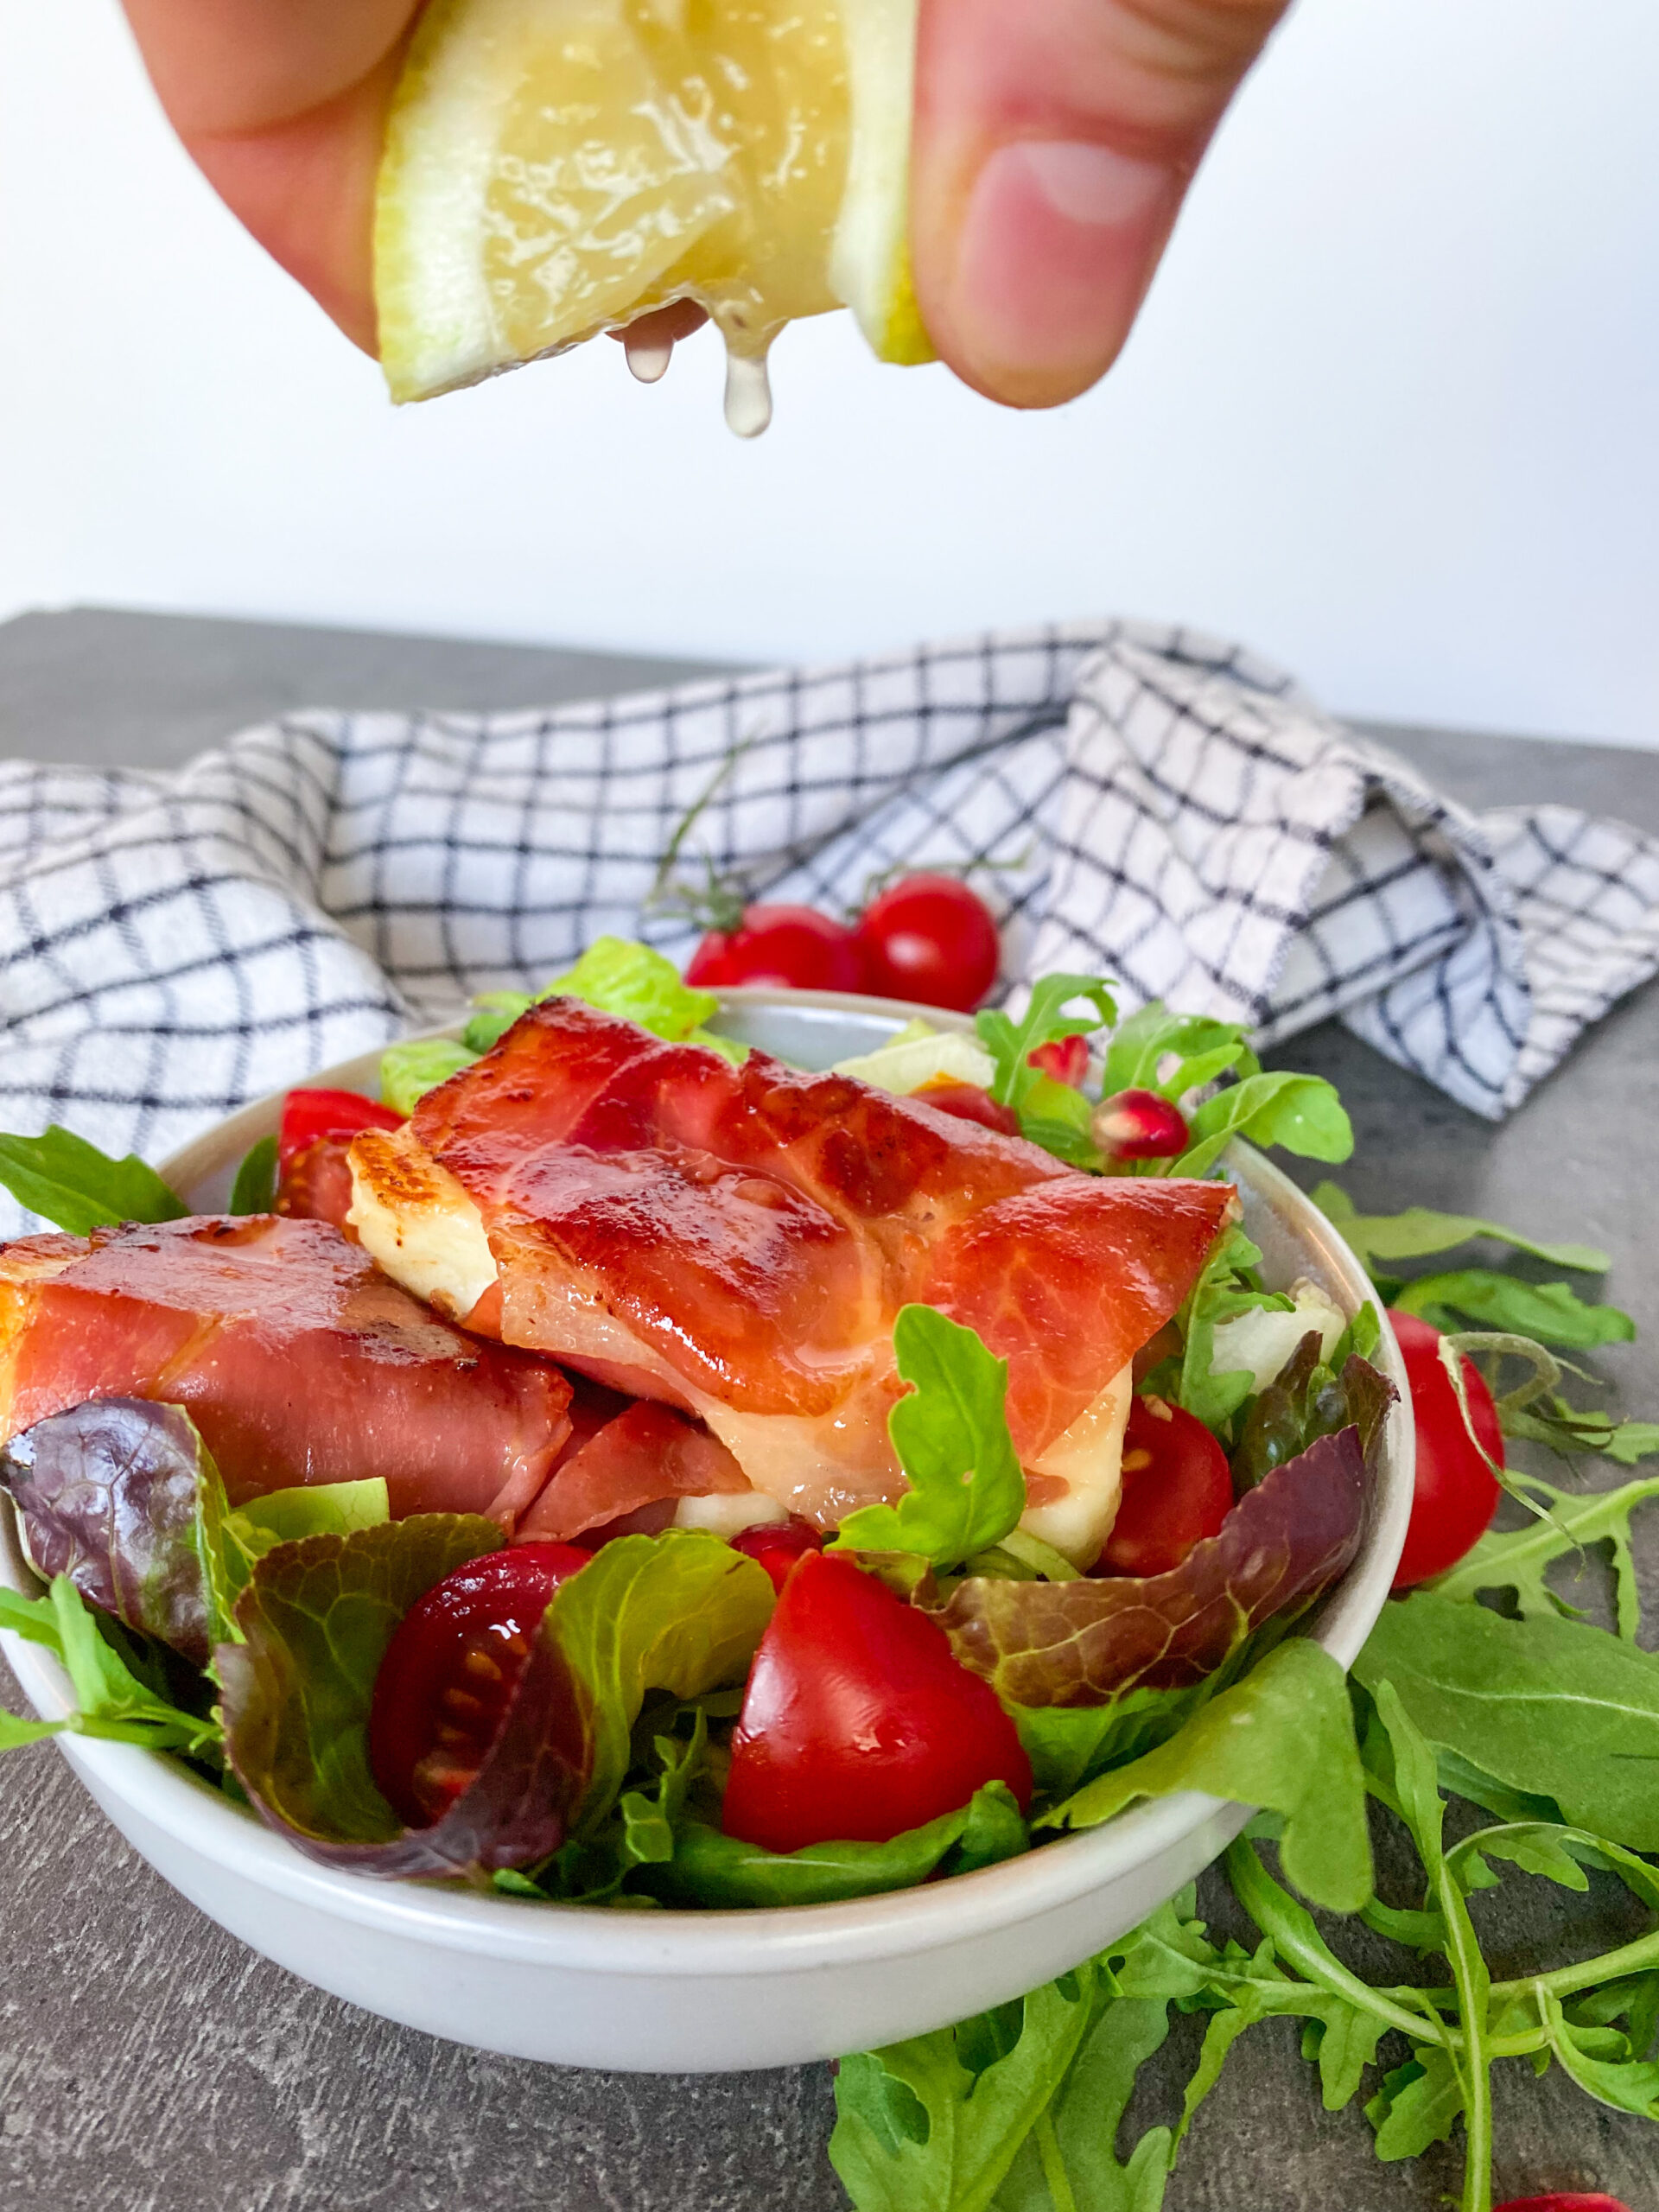 Picture of low carb halloumi and prosciutto salad